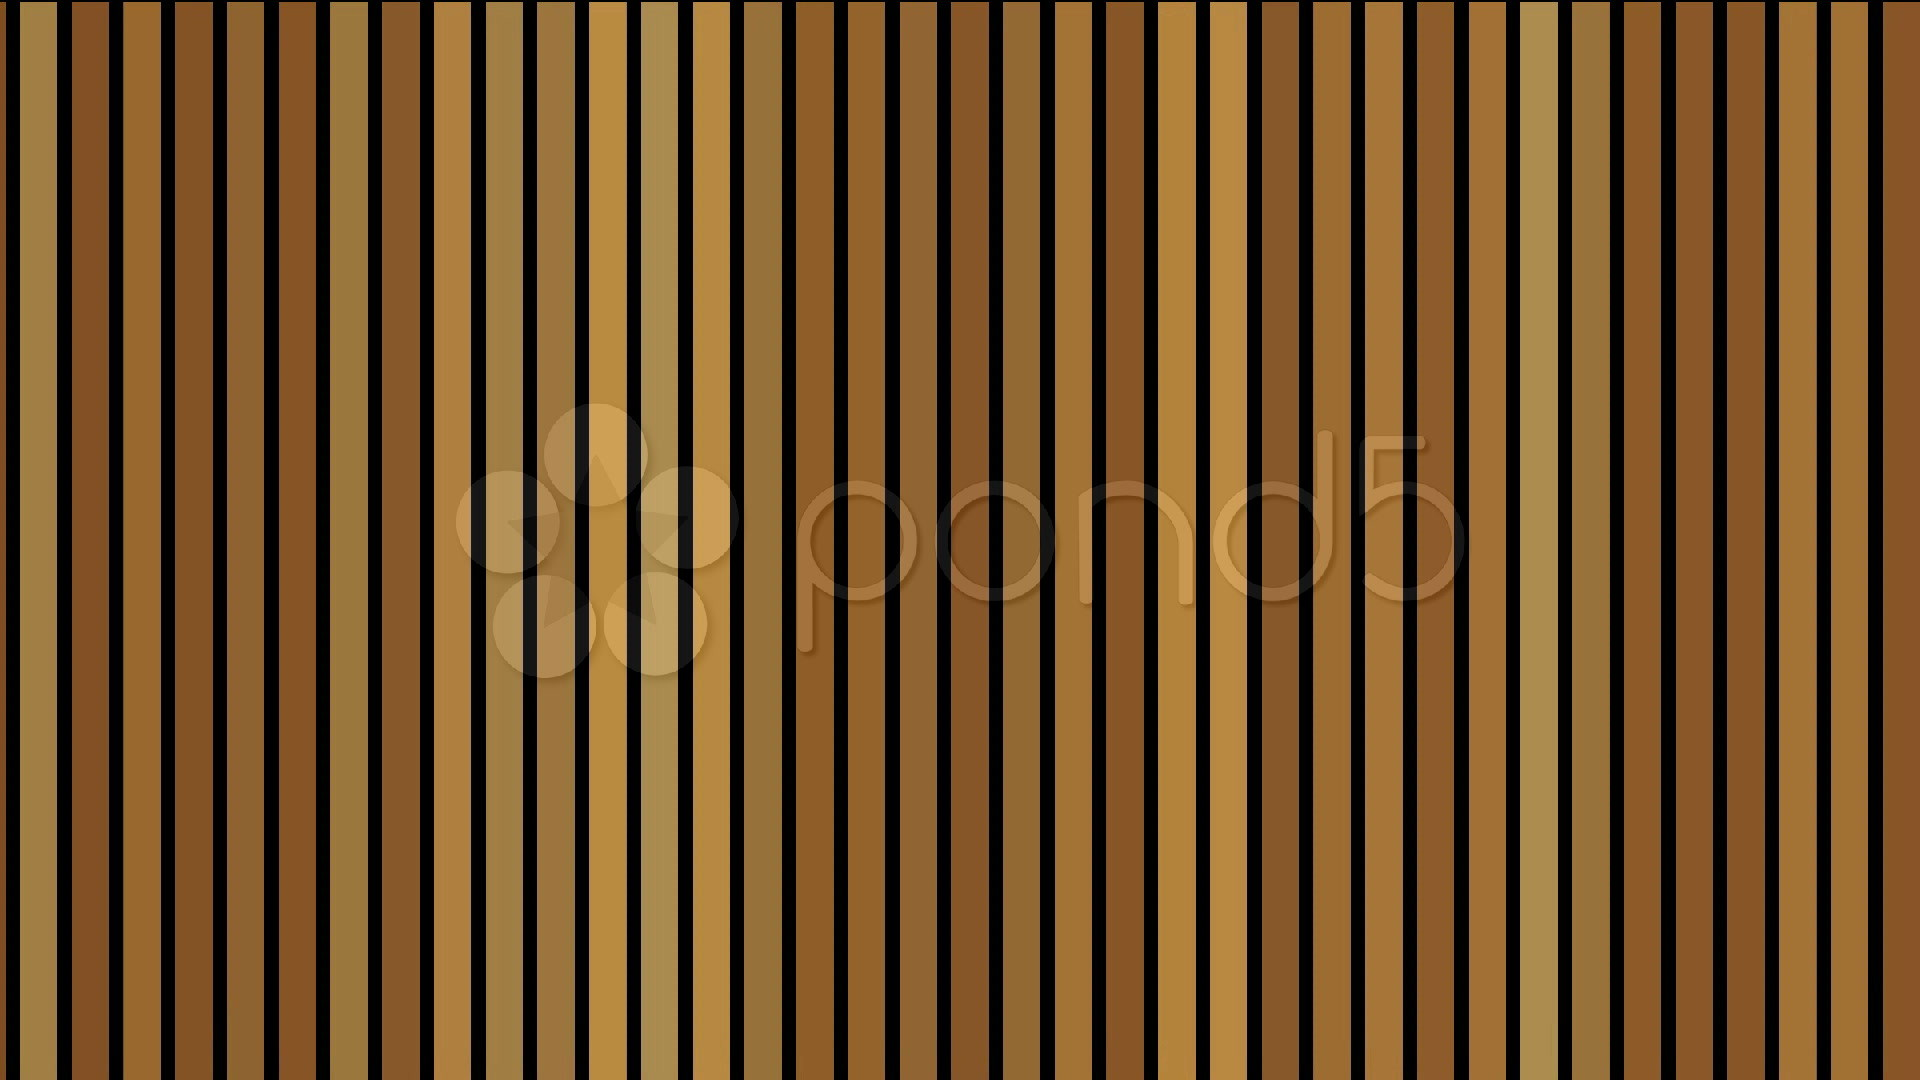 1920x1080 Best Bamboo Vertical Blinds And Color Vertical Stripe Background  Windows,television,bamboo,blinds 5